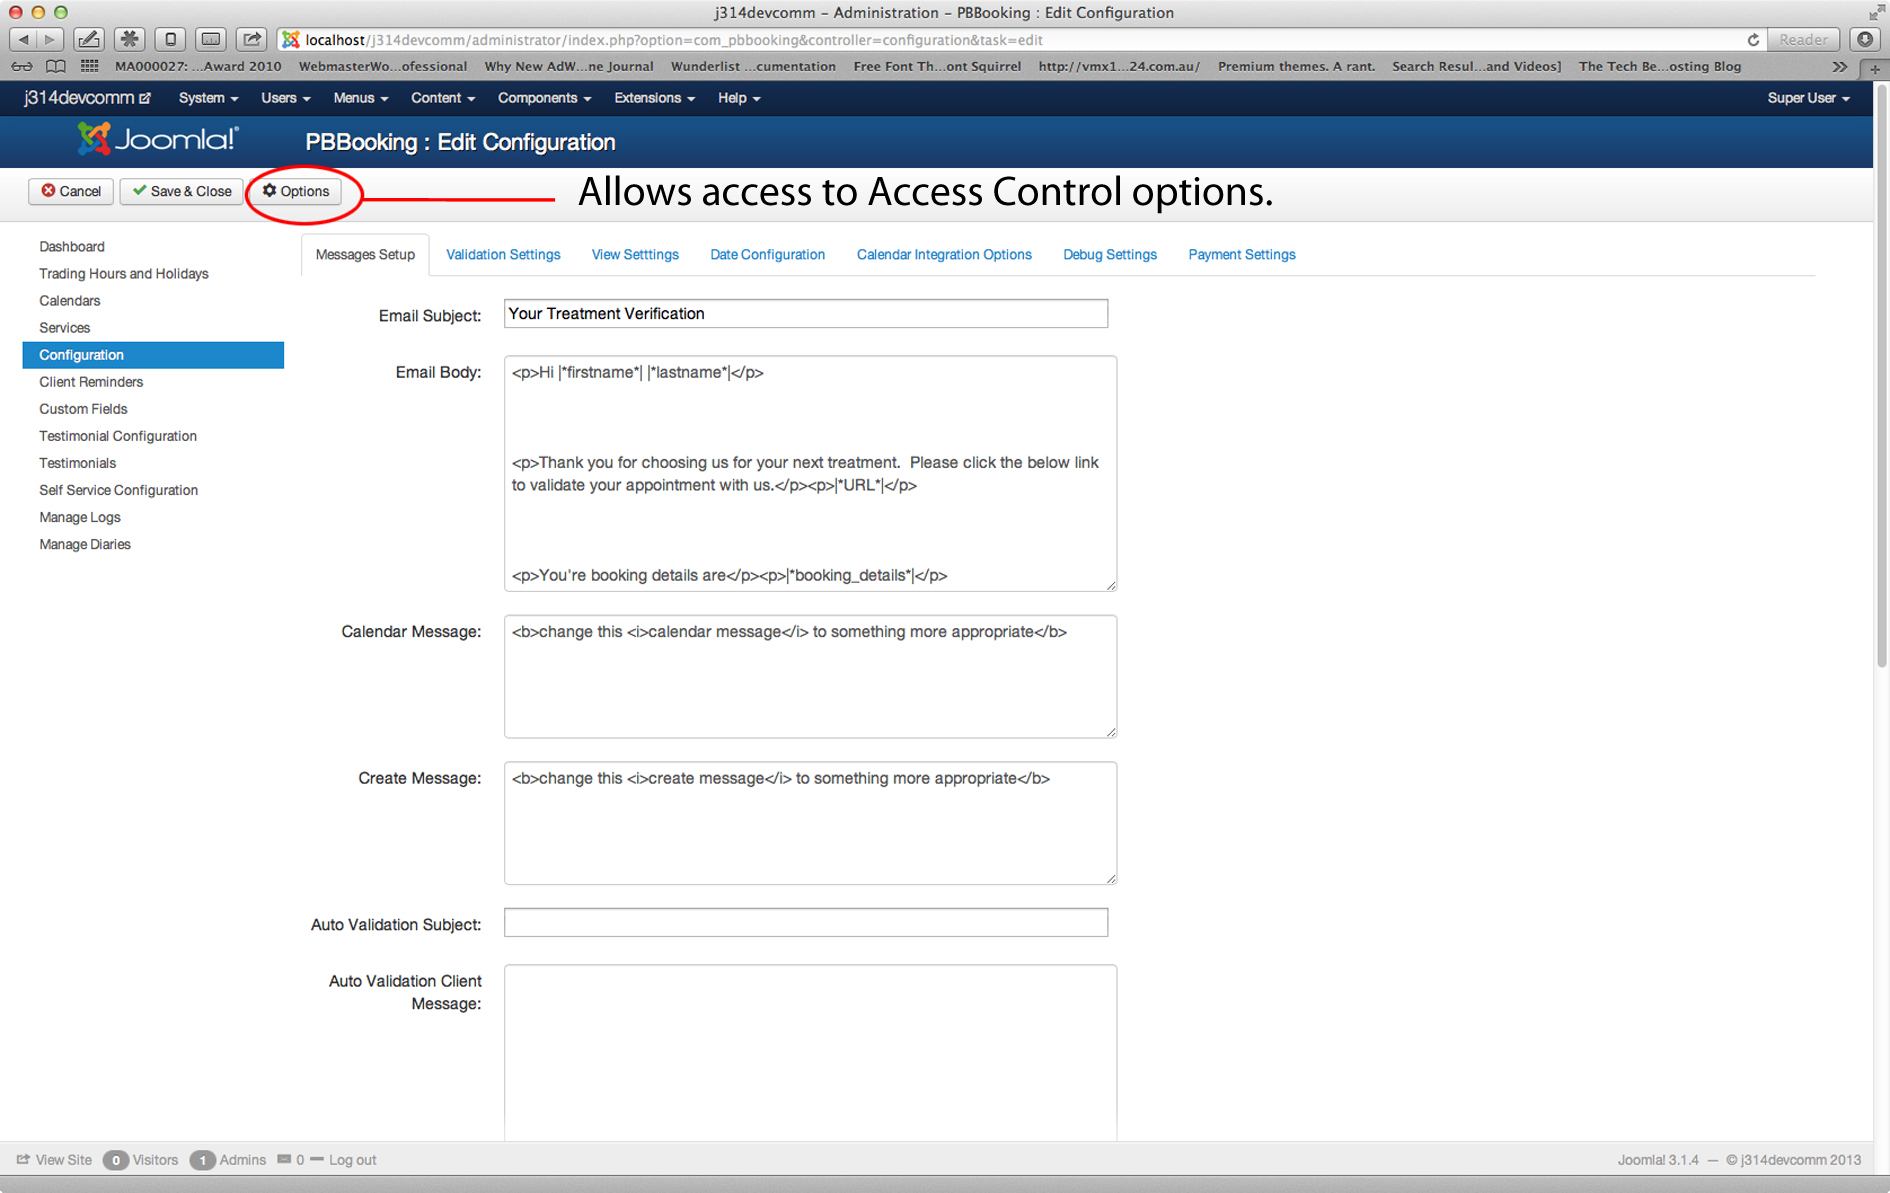 Access the Access Control settings from the main configuration